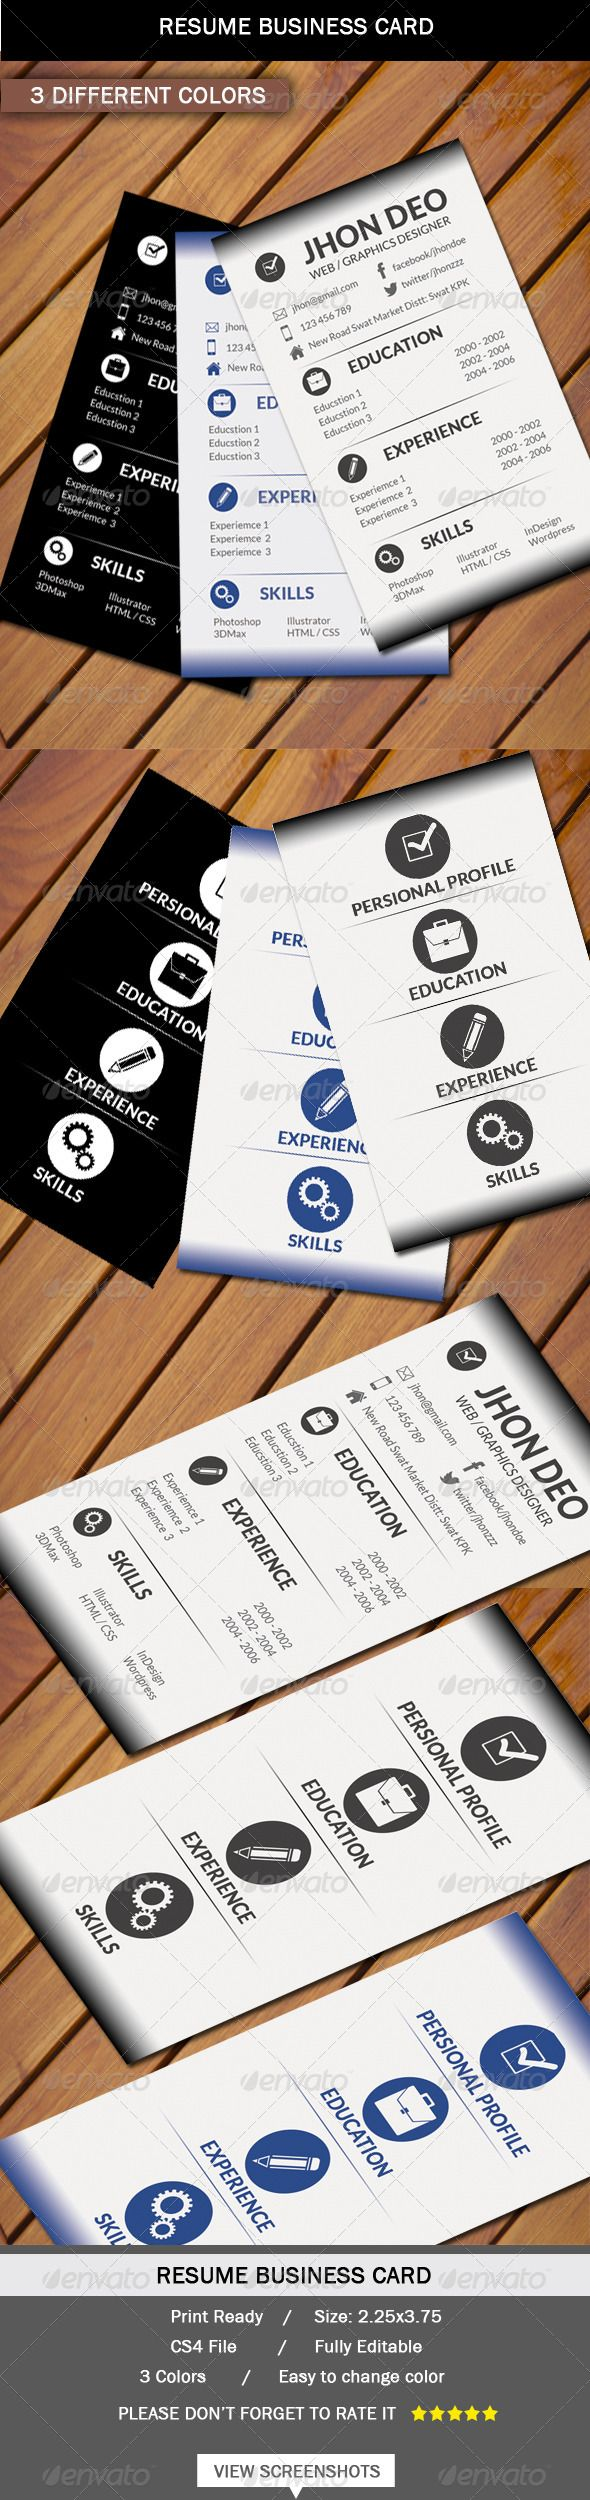 best ideas about resume styles cv design business card resume style